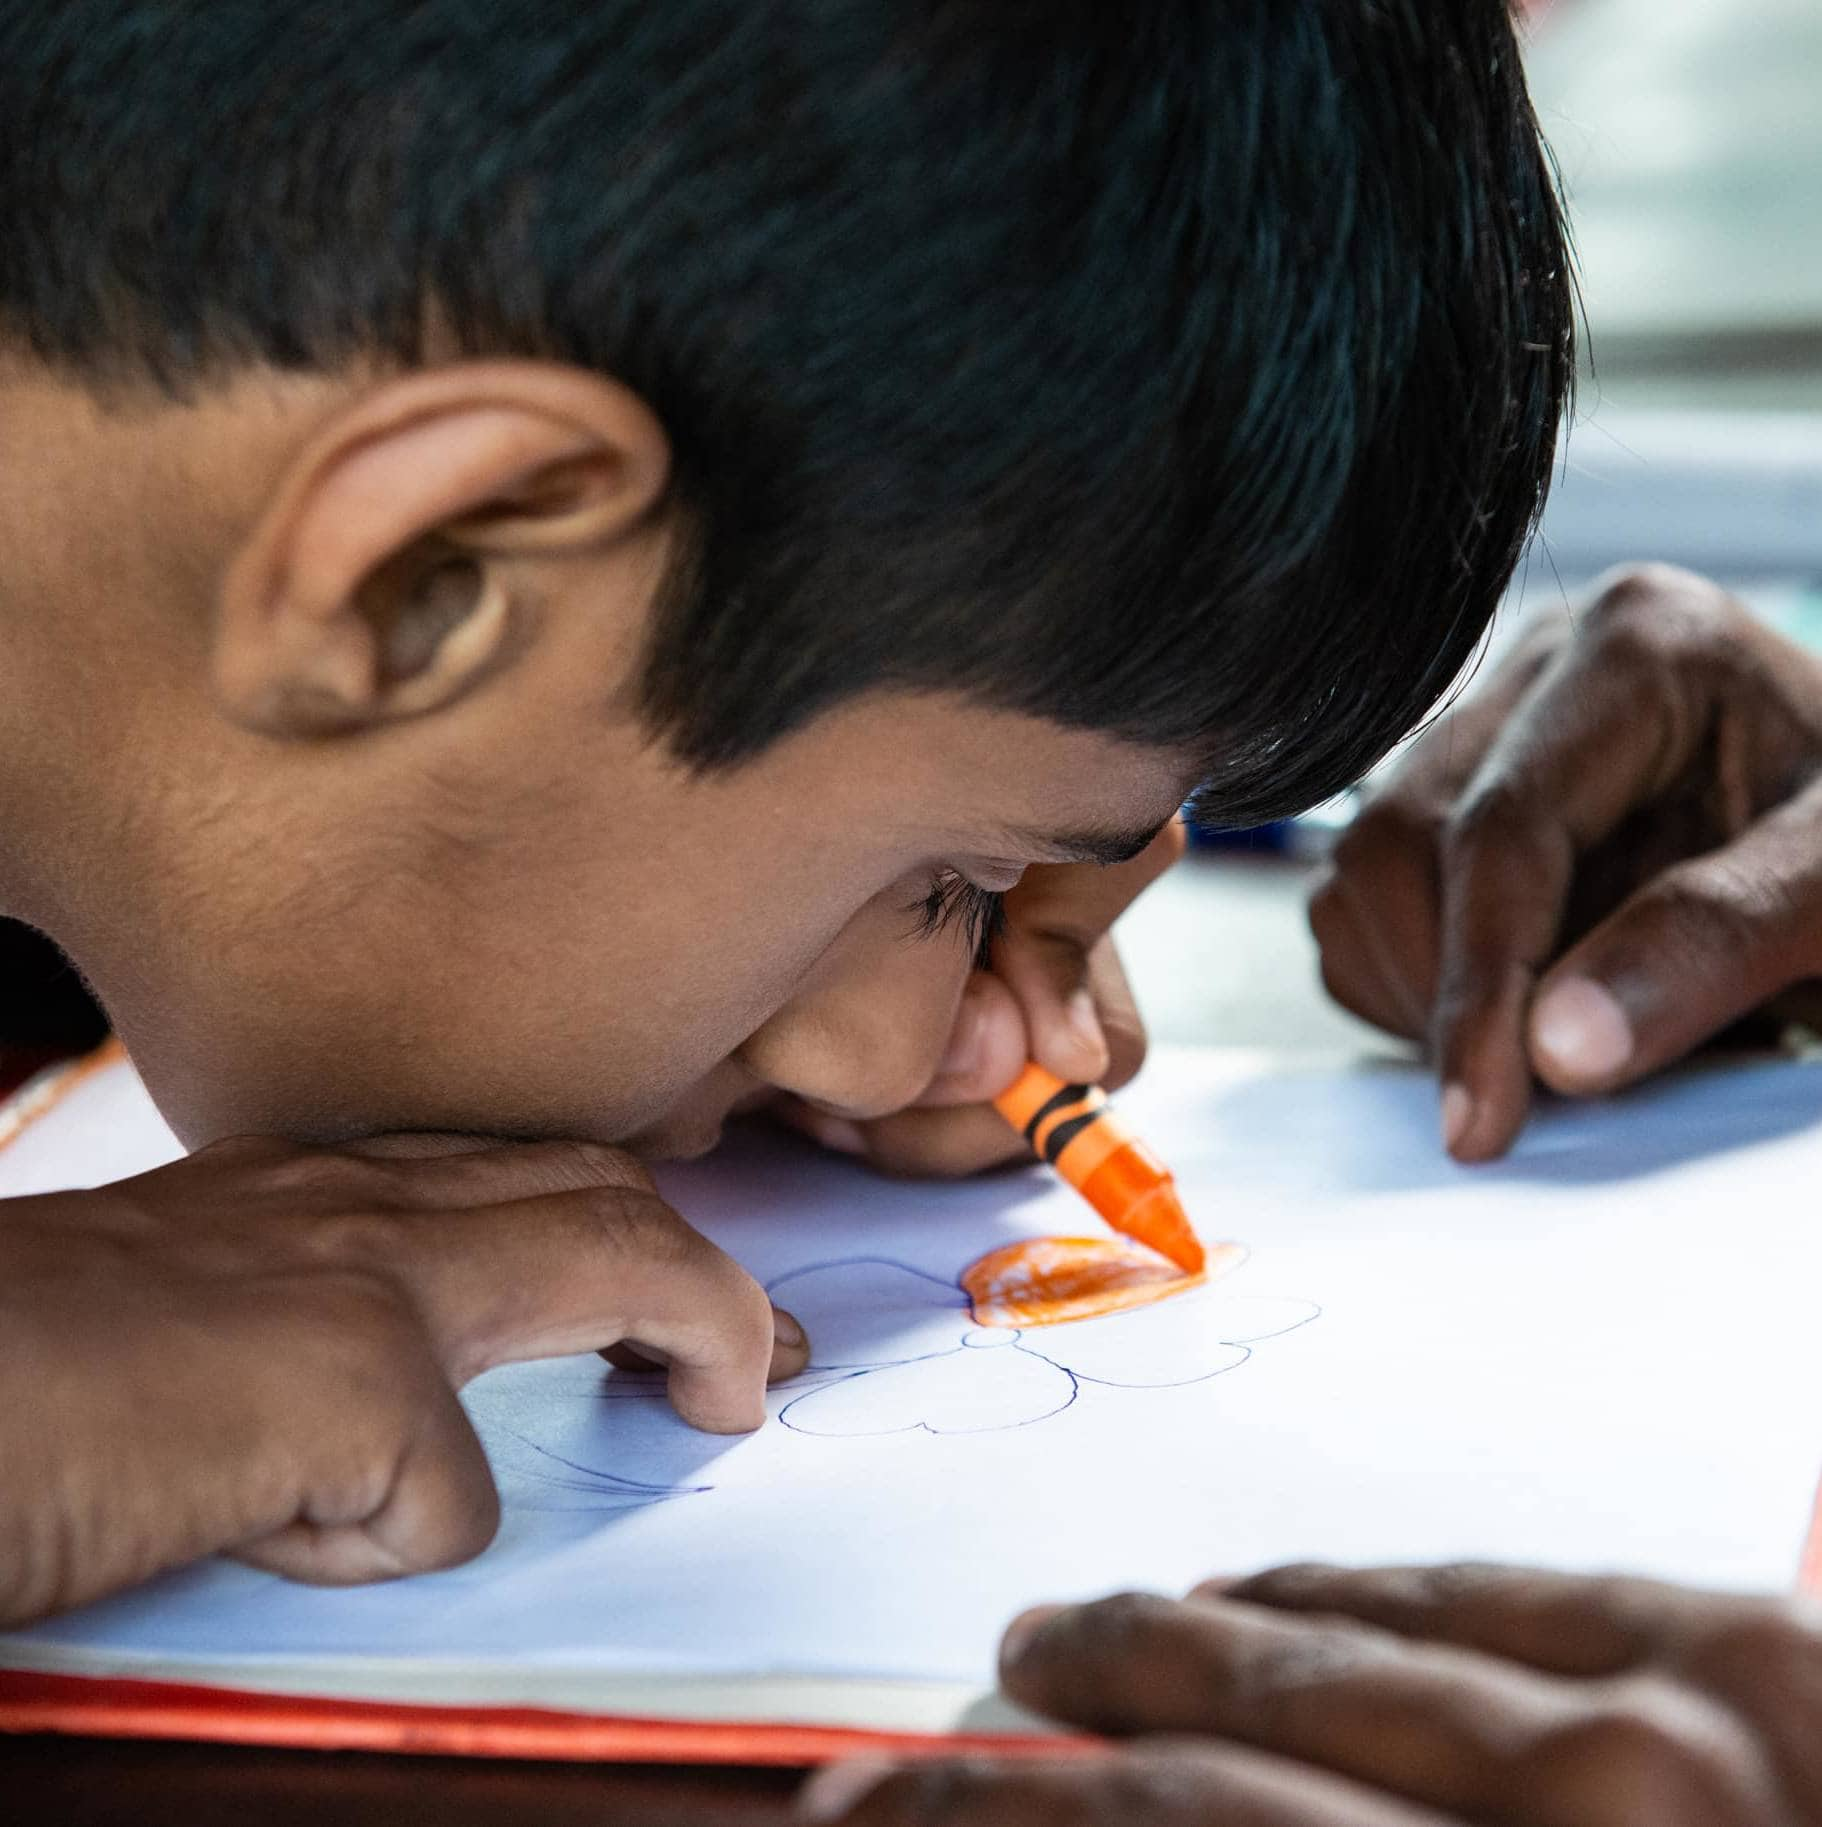 A boy colors, sitting with his face very close to the paper.